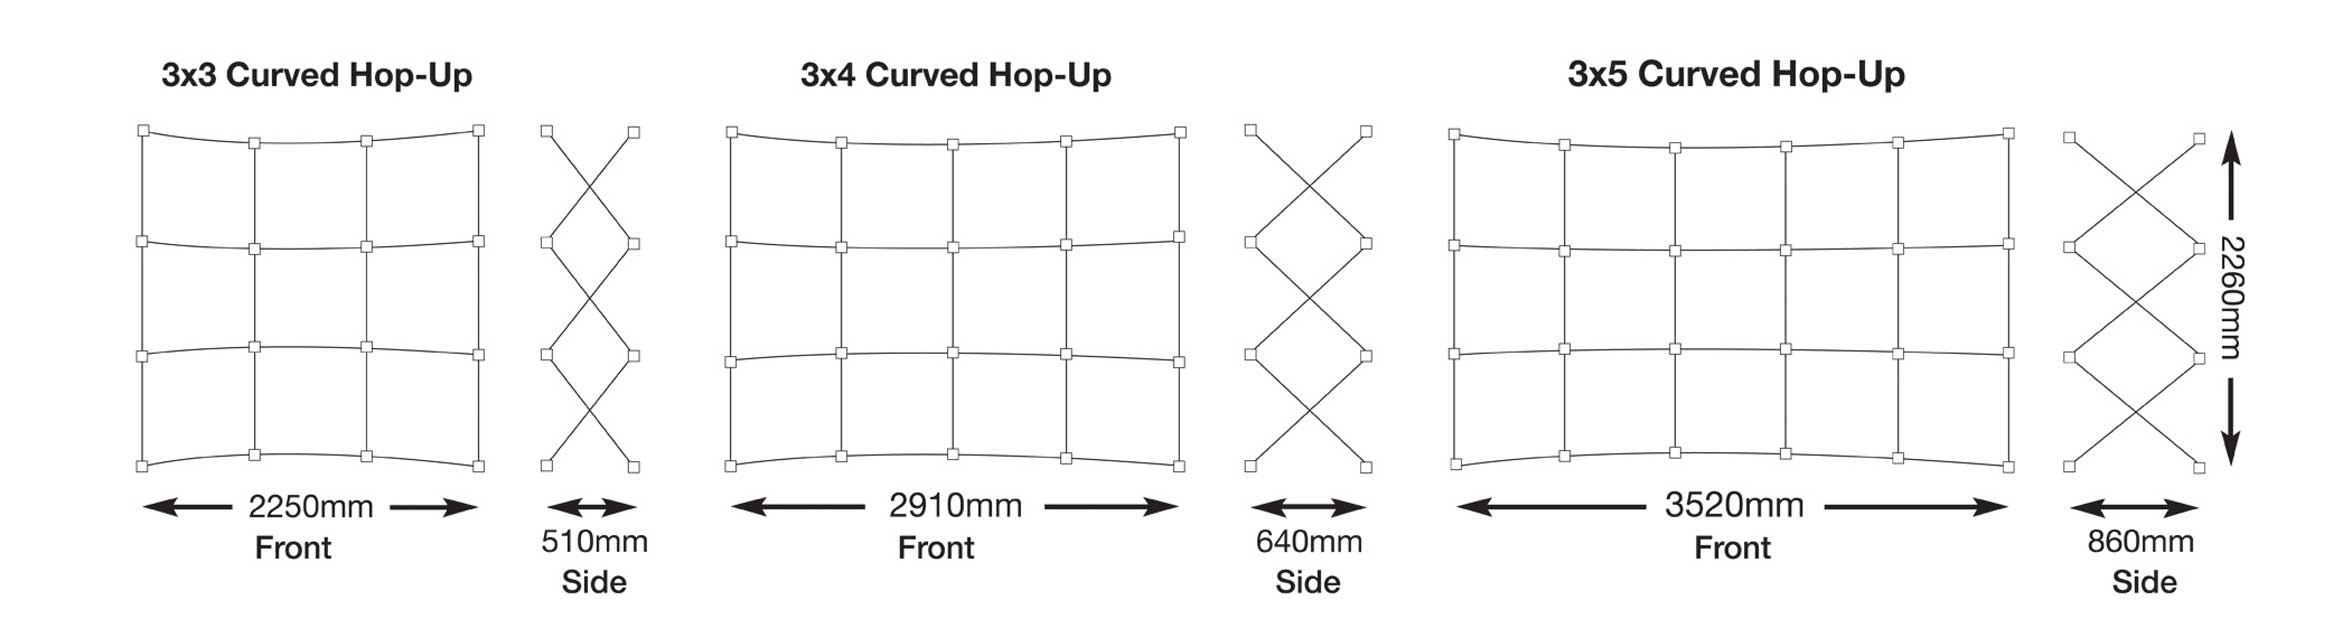 Curved Fabric Hop-Up Stand Sizes